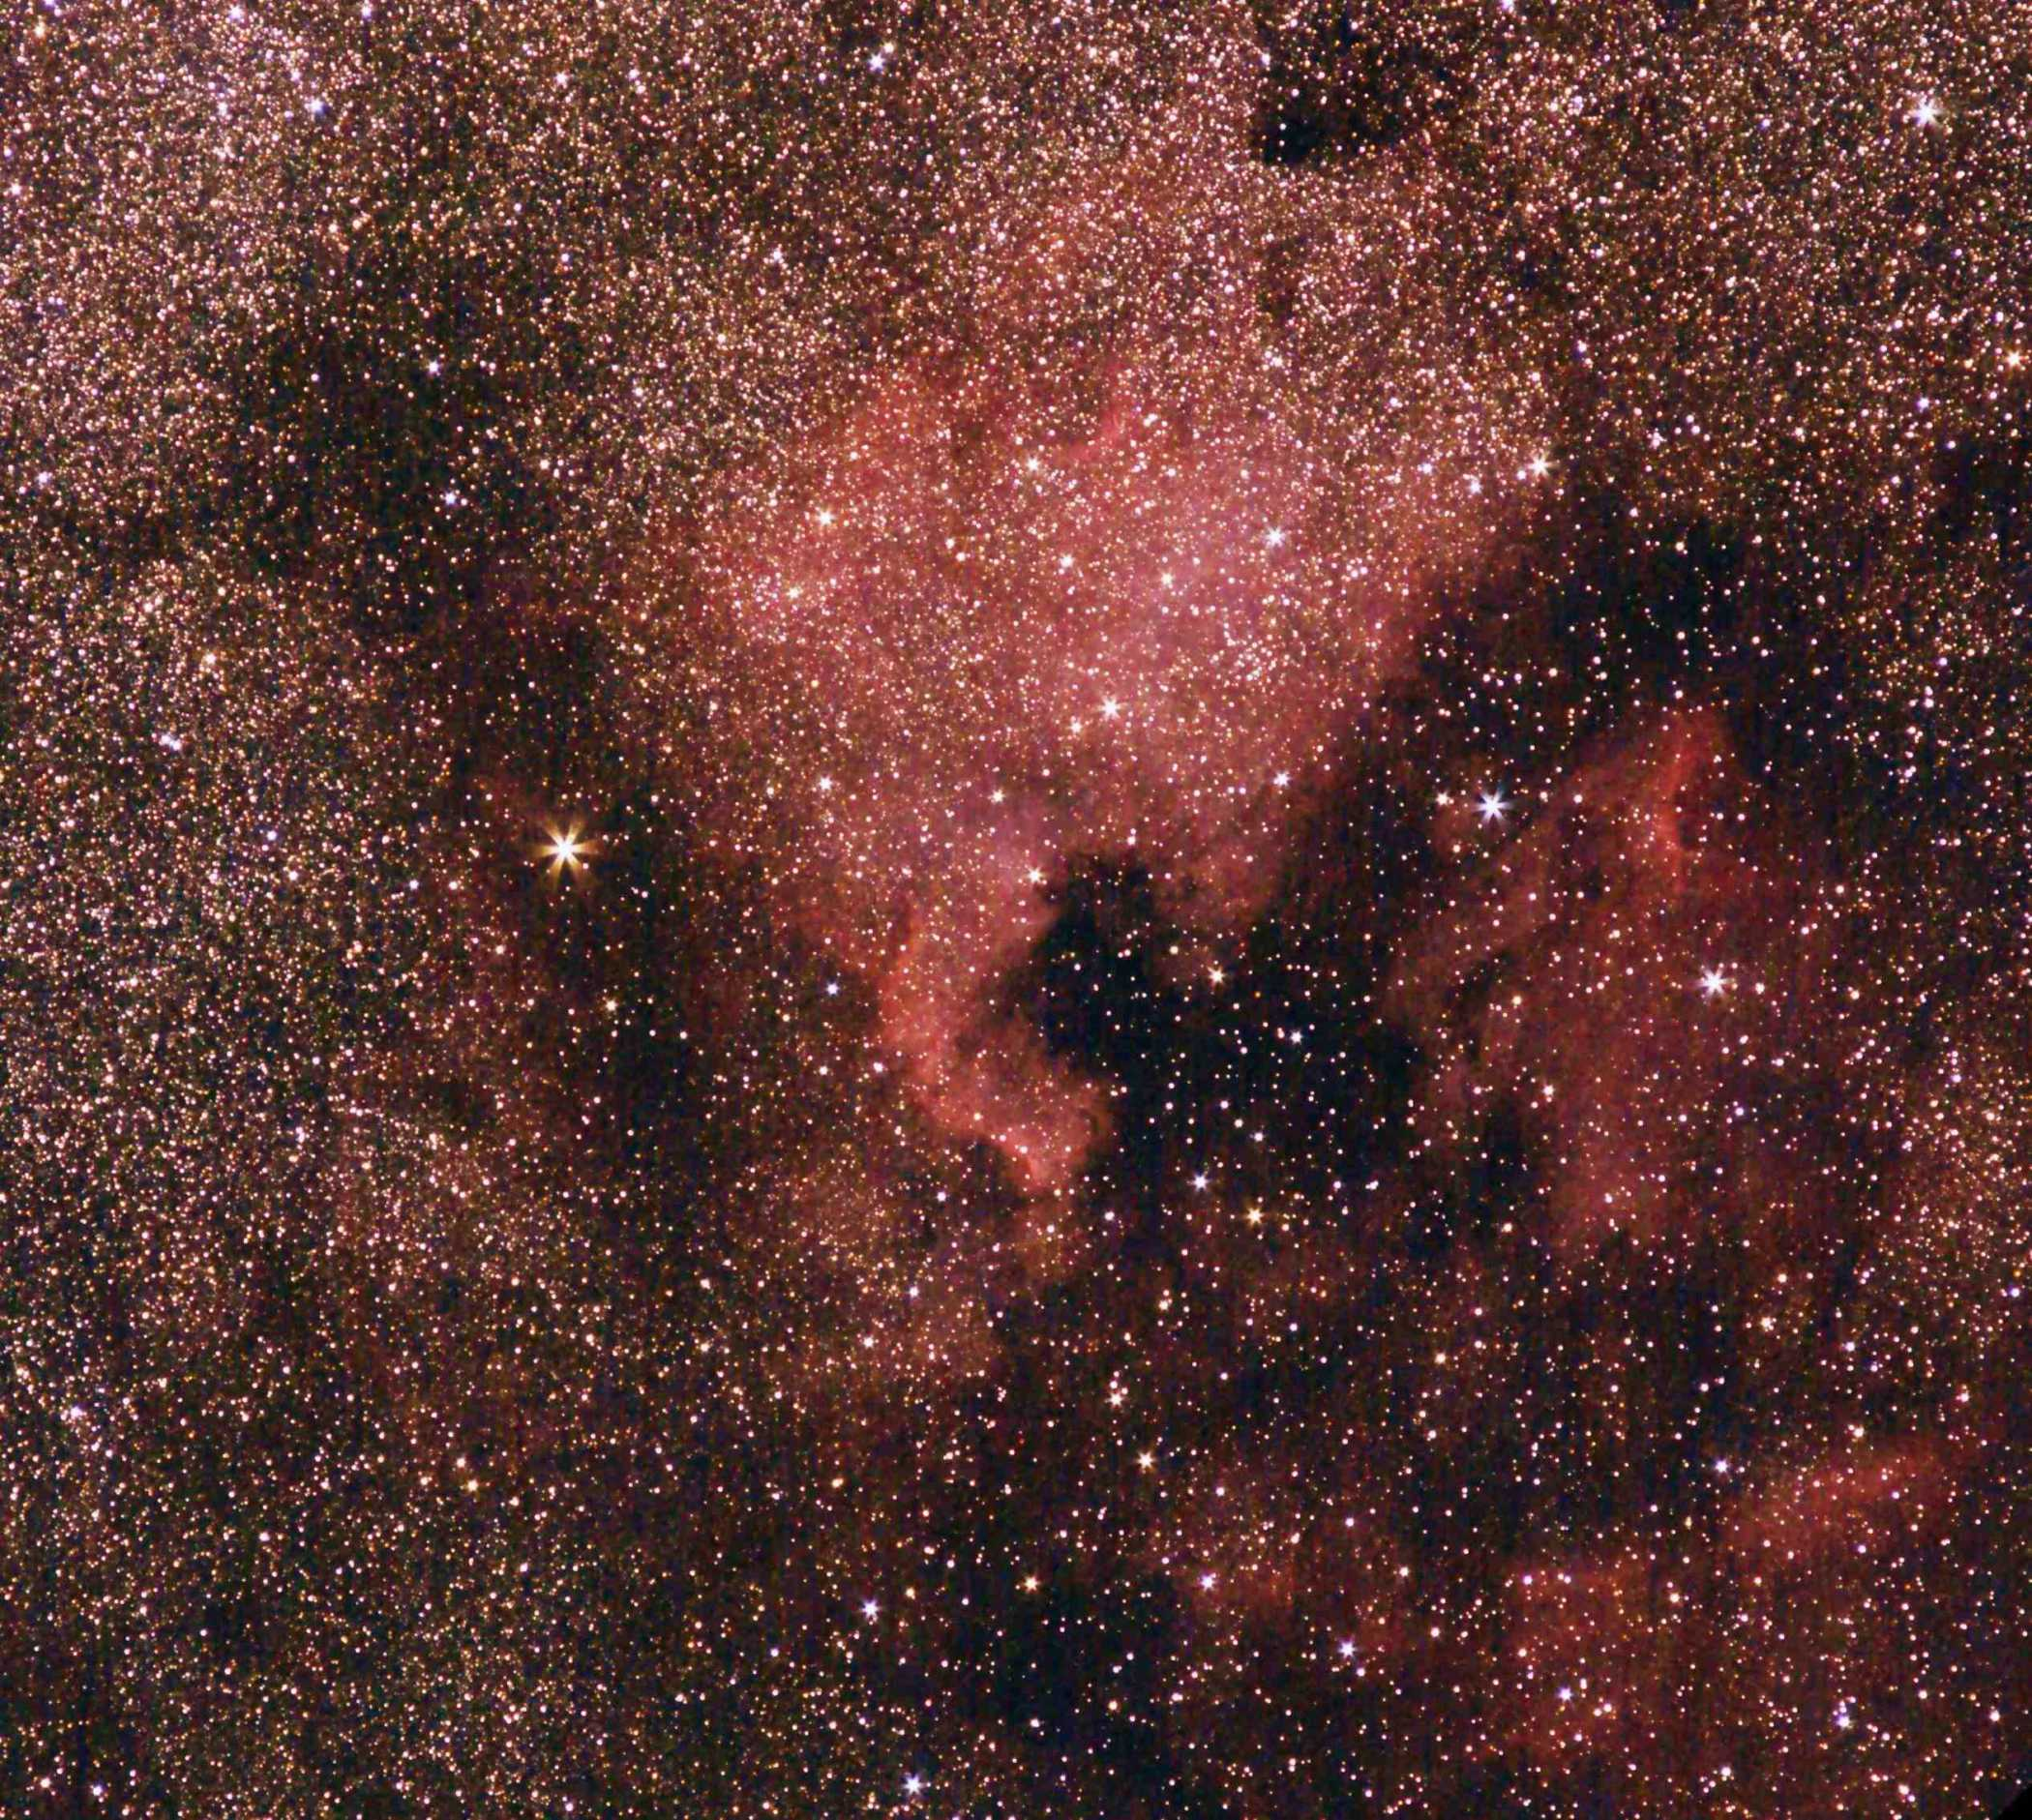 NGC7000_CZJ_135_Blende5.6_ISO6400_V4.1_cut_small.jpg